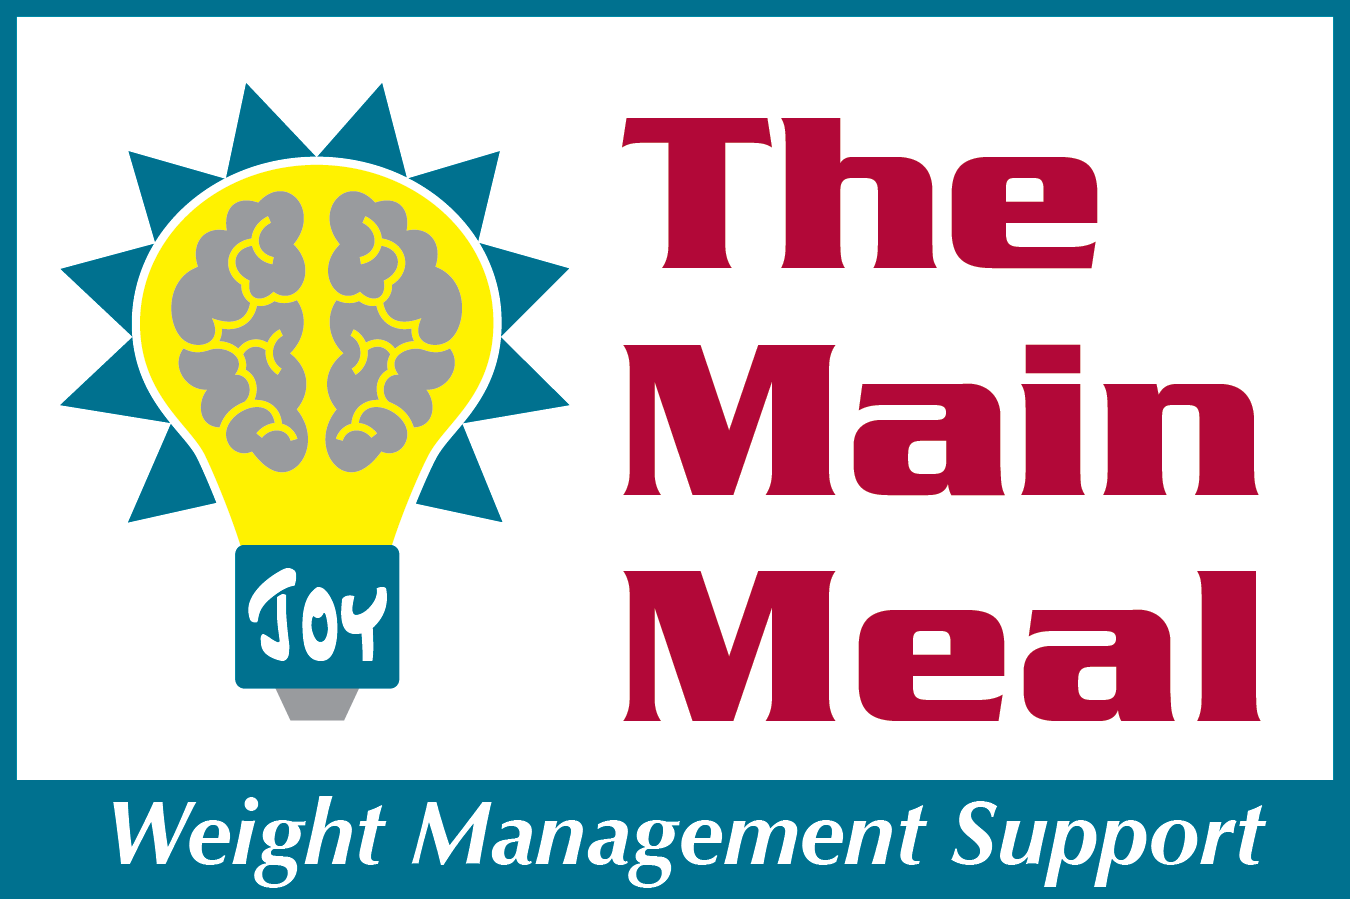 Learn about The Main Meal WMS Philosophy